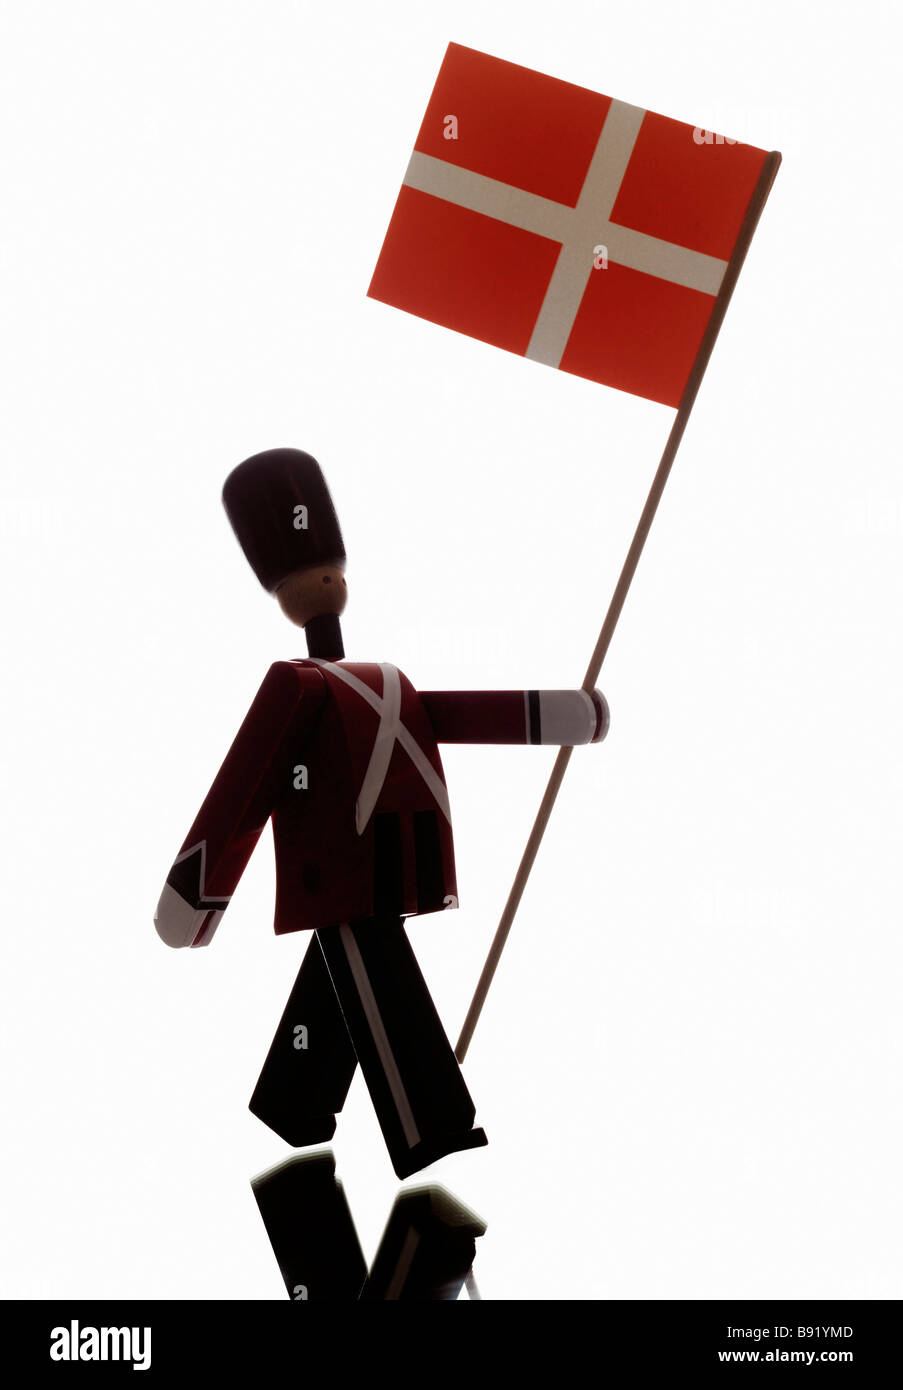 The Danish lifeguards in the shape of dolls. - Stock Image